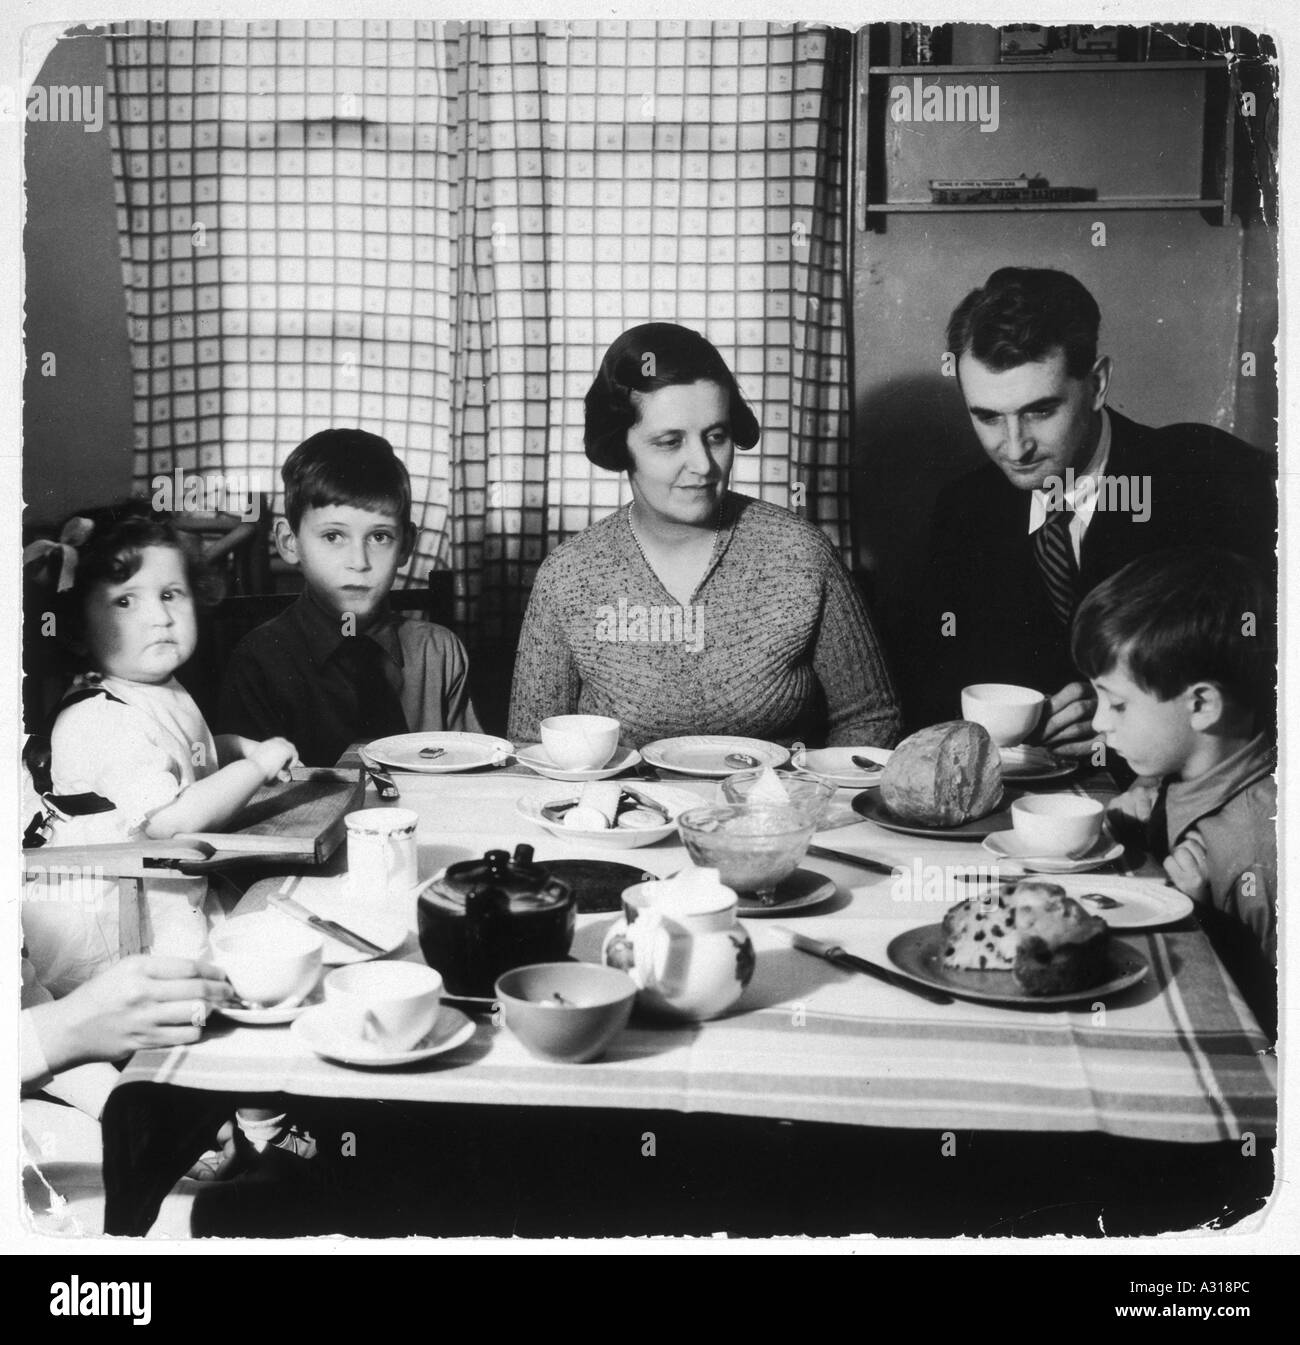 Family Afternoon Tea 30s - Stock Image